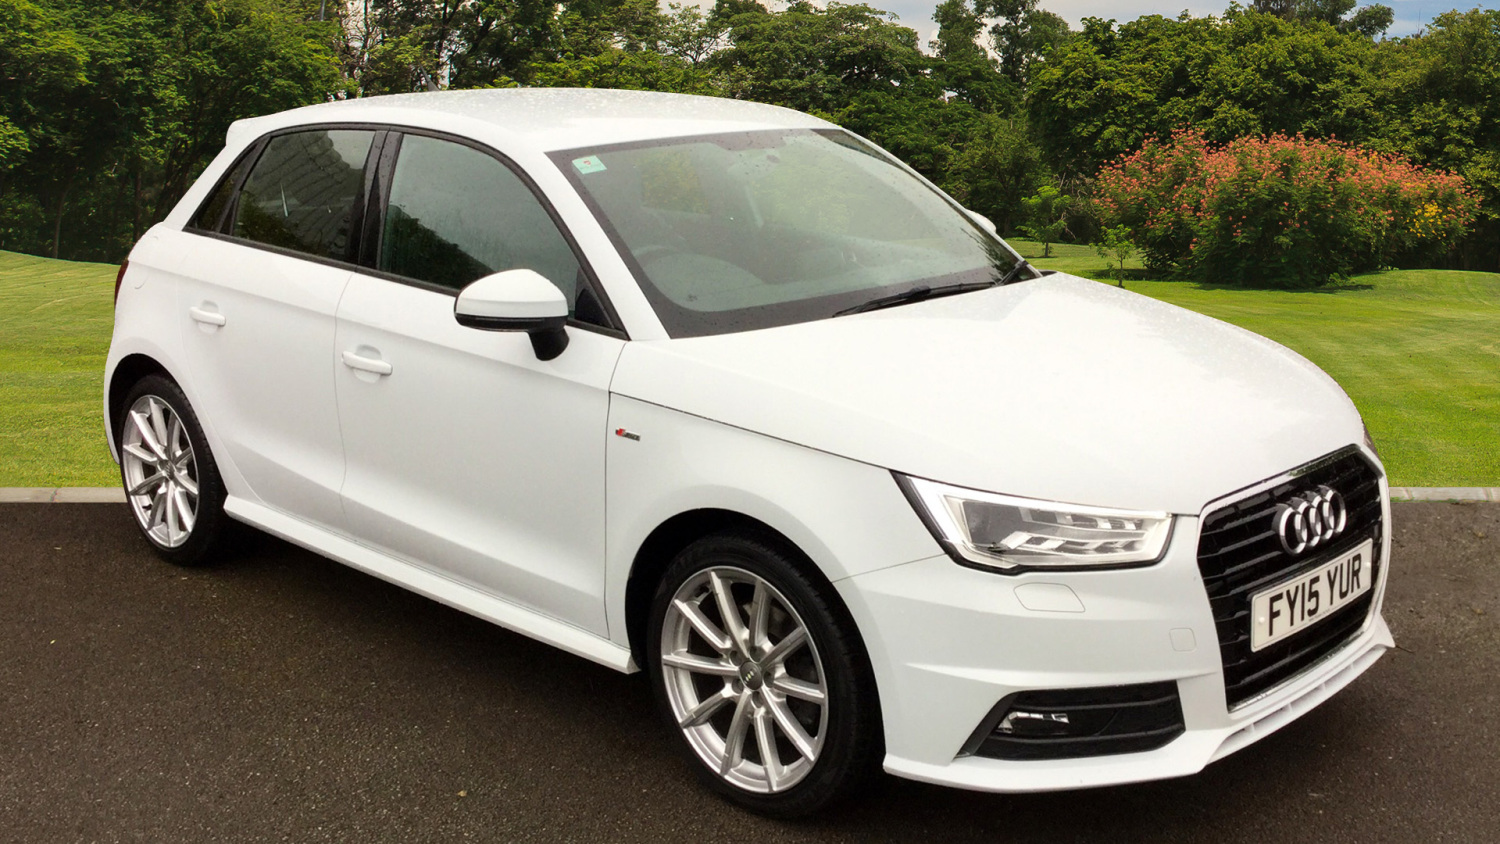 used audi a1 1 6 tdi s line 3dr diesel hatchback for sale. Black Bedroom Furniture Sets. Home Design Ideas